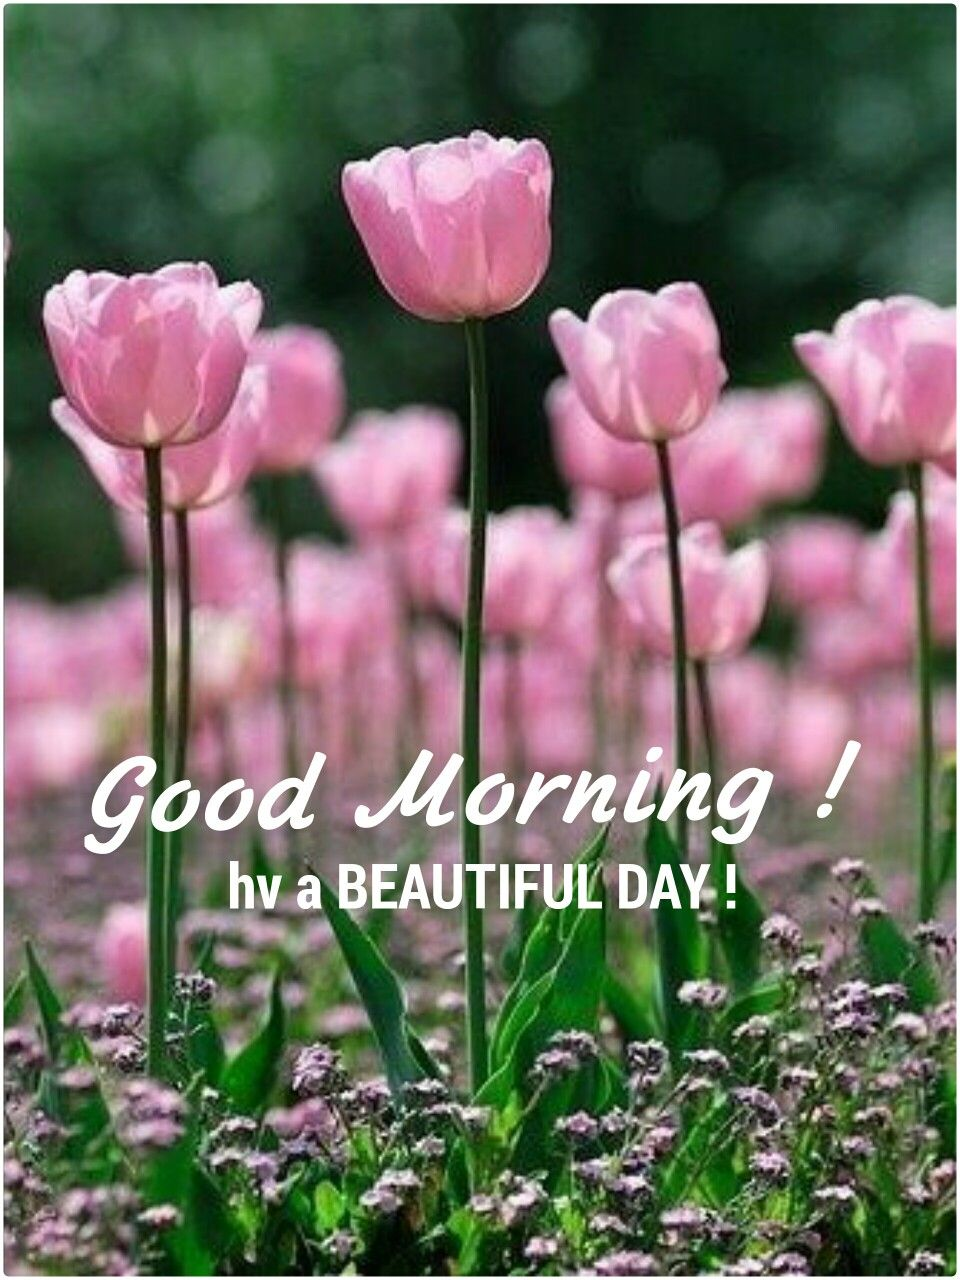 Good Morning With Images Beautiful Flowers Pink Flowers Flowers